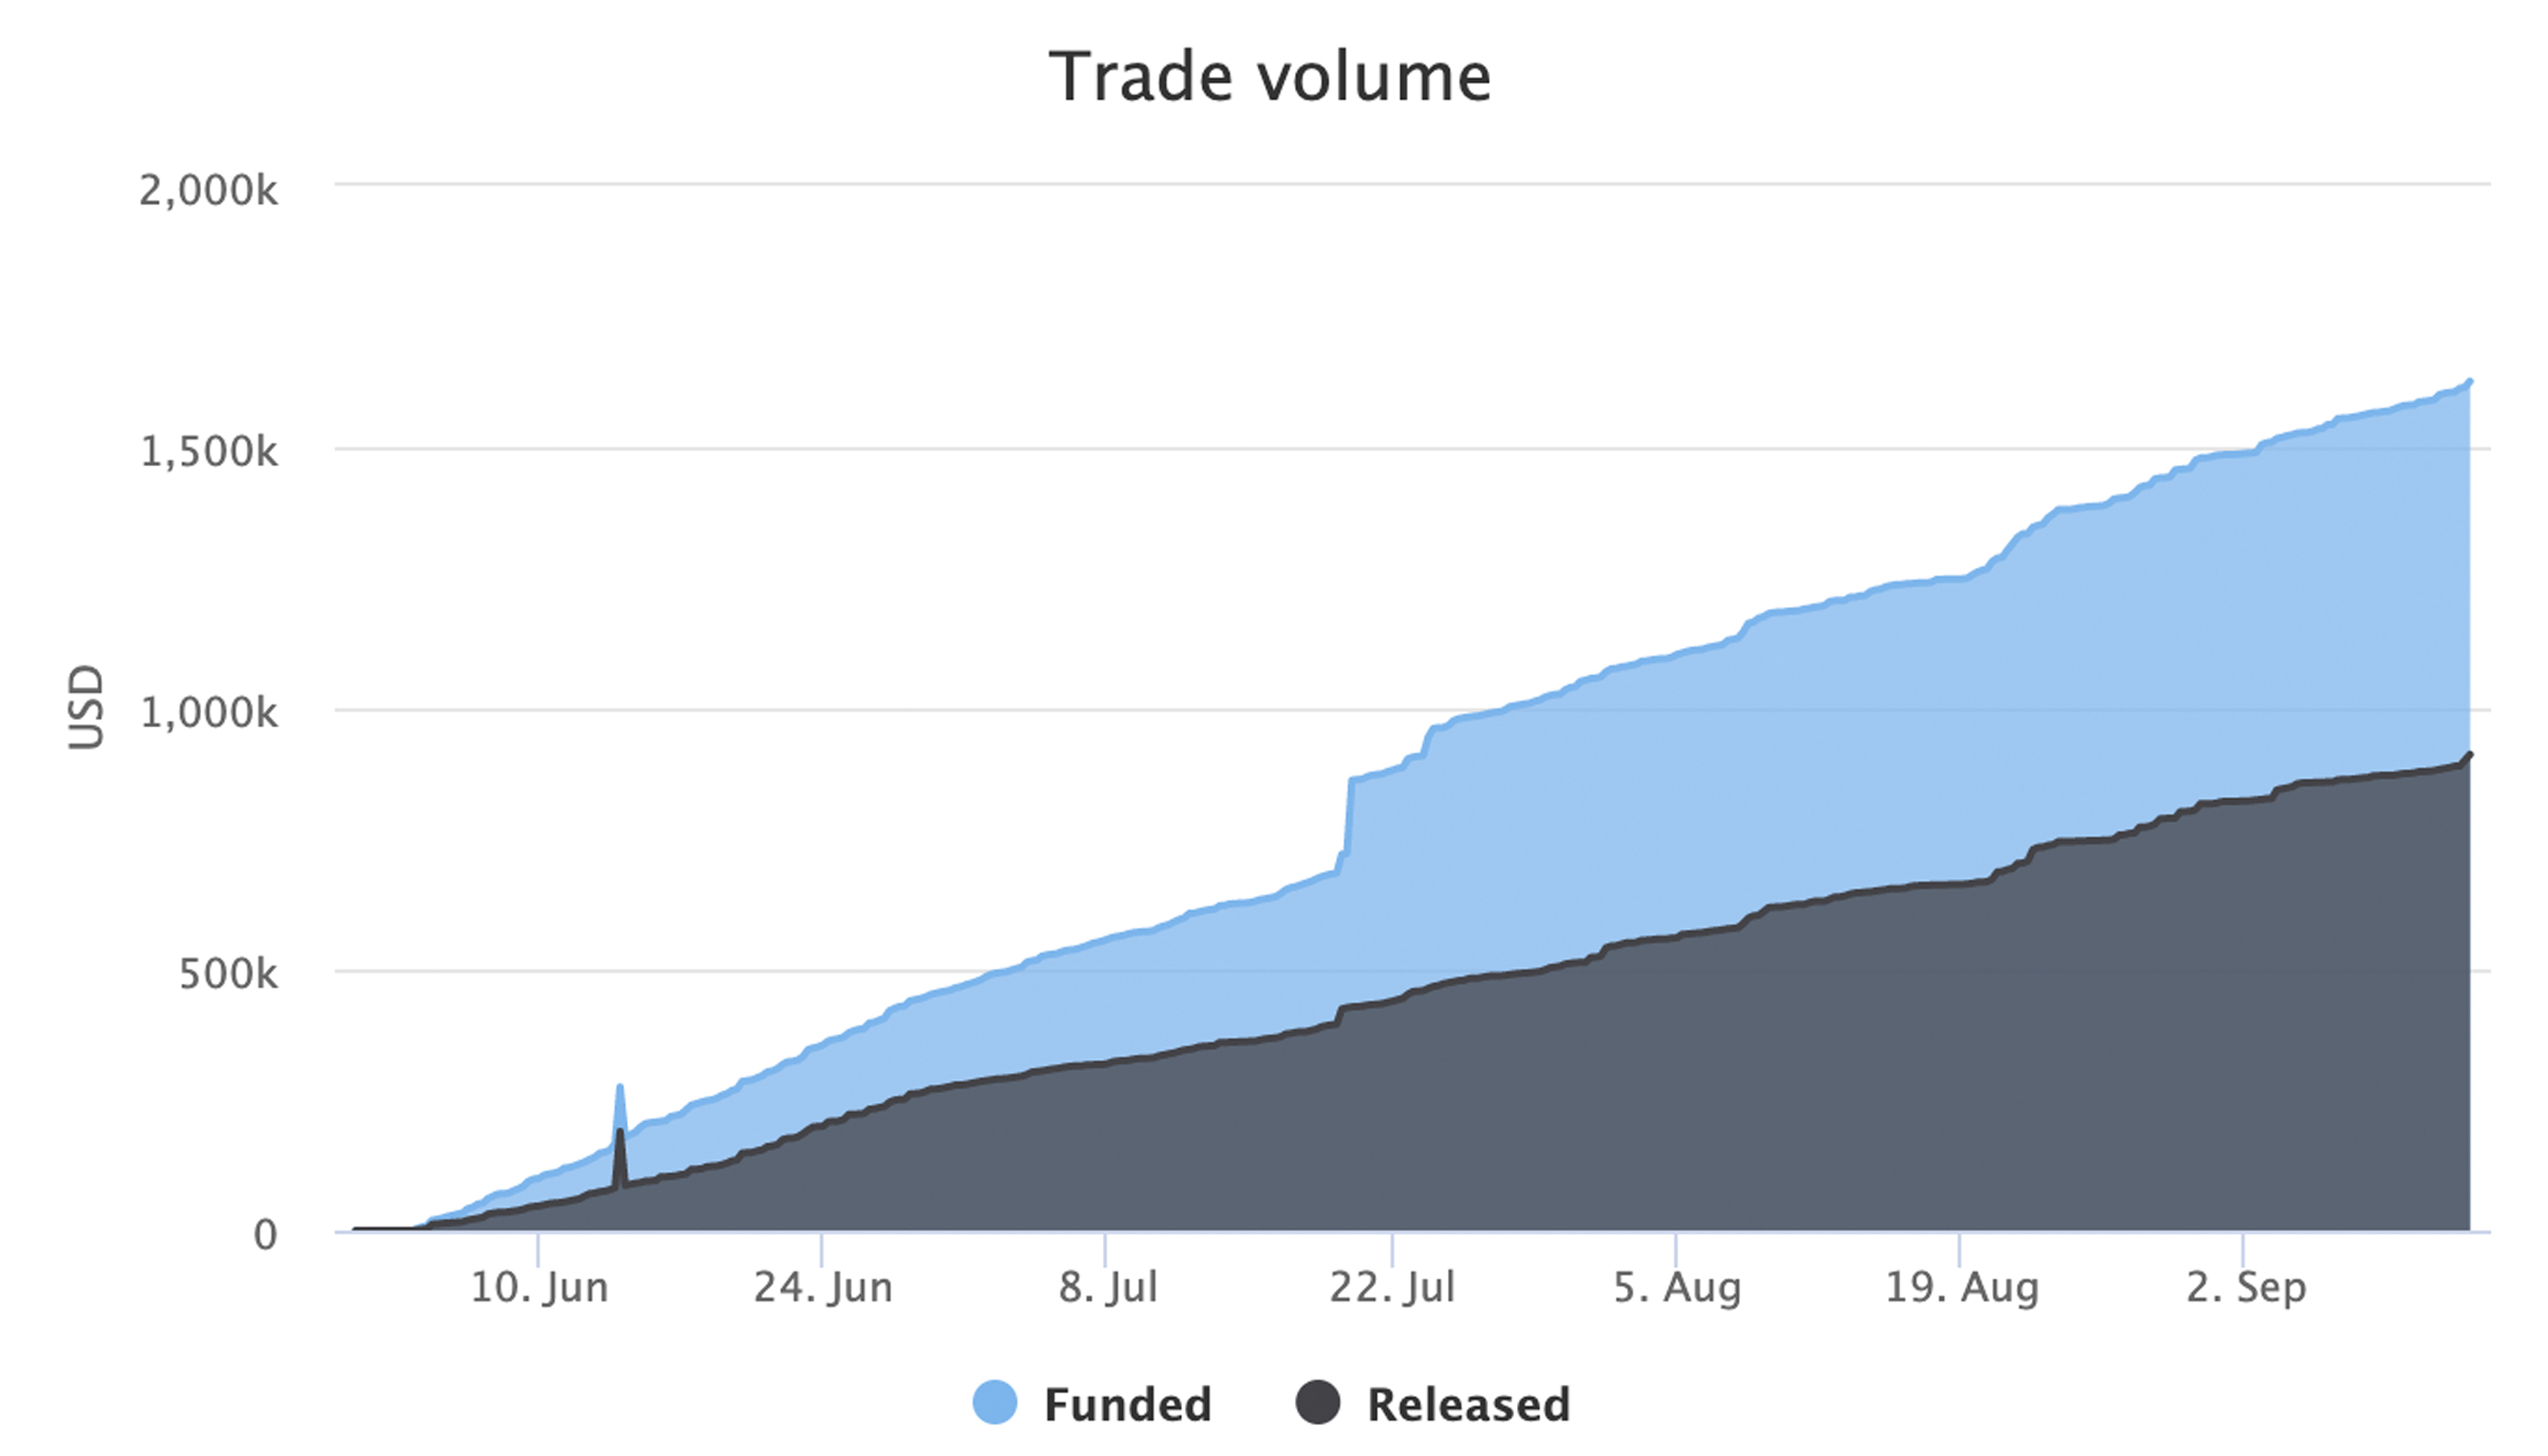 Local.Bitcoin.com Gathers 56K Accounts and $200M Worth of Trades Initiated 2